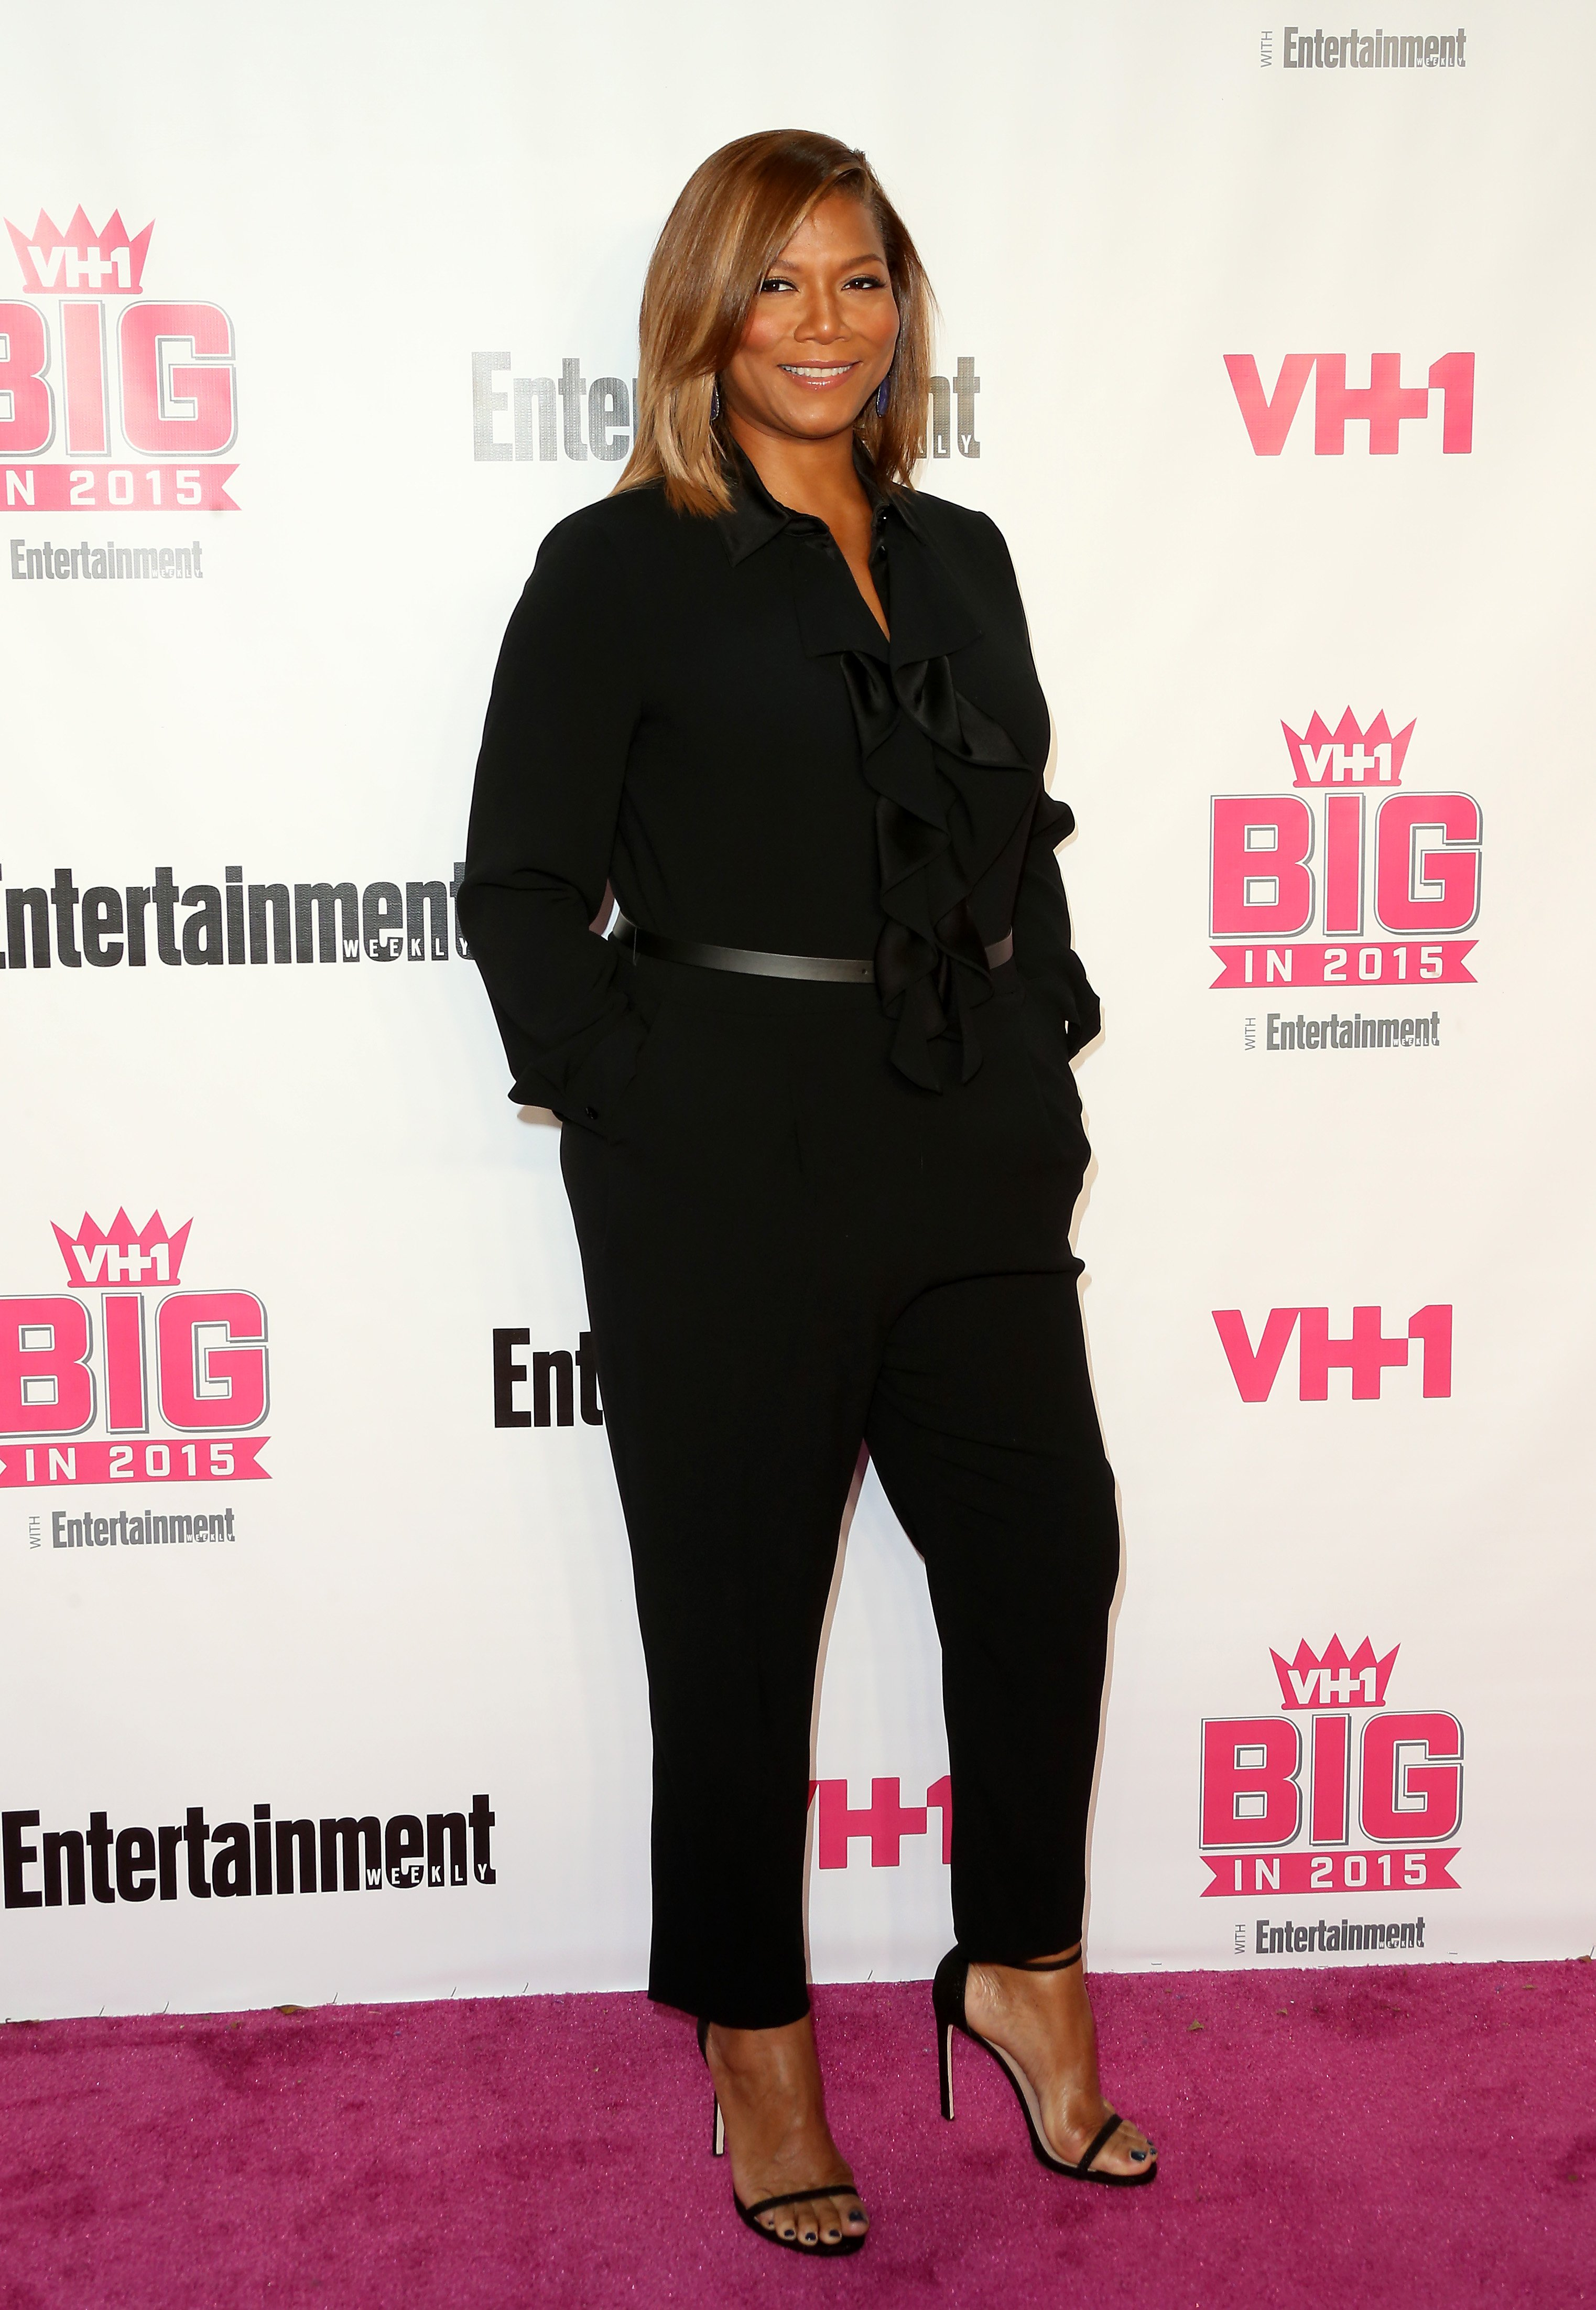 Queen Latifah at VH1 Big In 2015 With Entertainment Weekly Awards on Nov. 15, 2015 in California | Photo: Getty Images